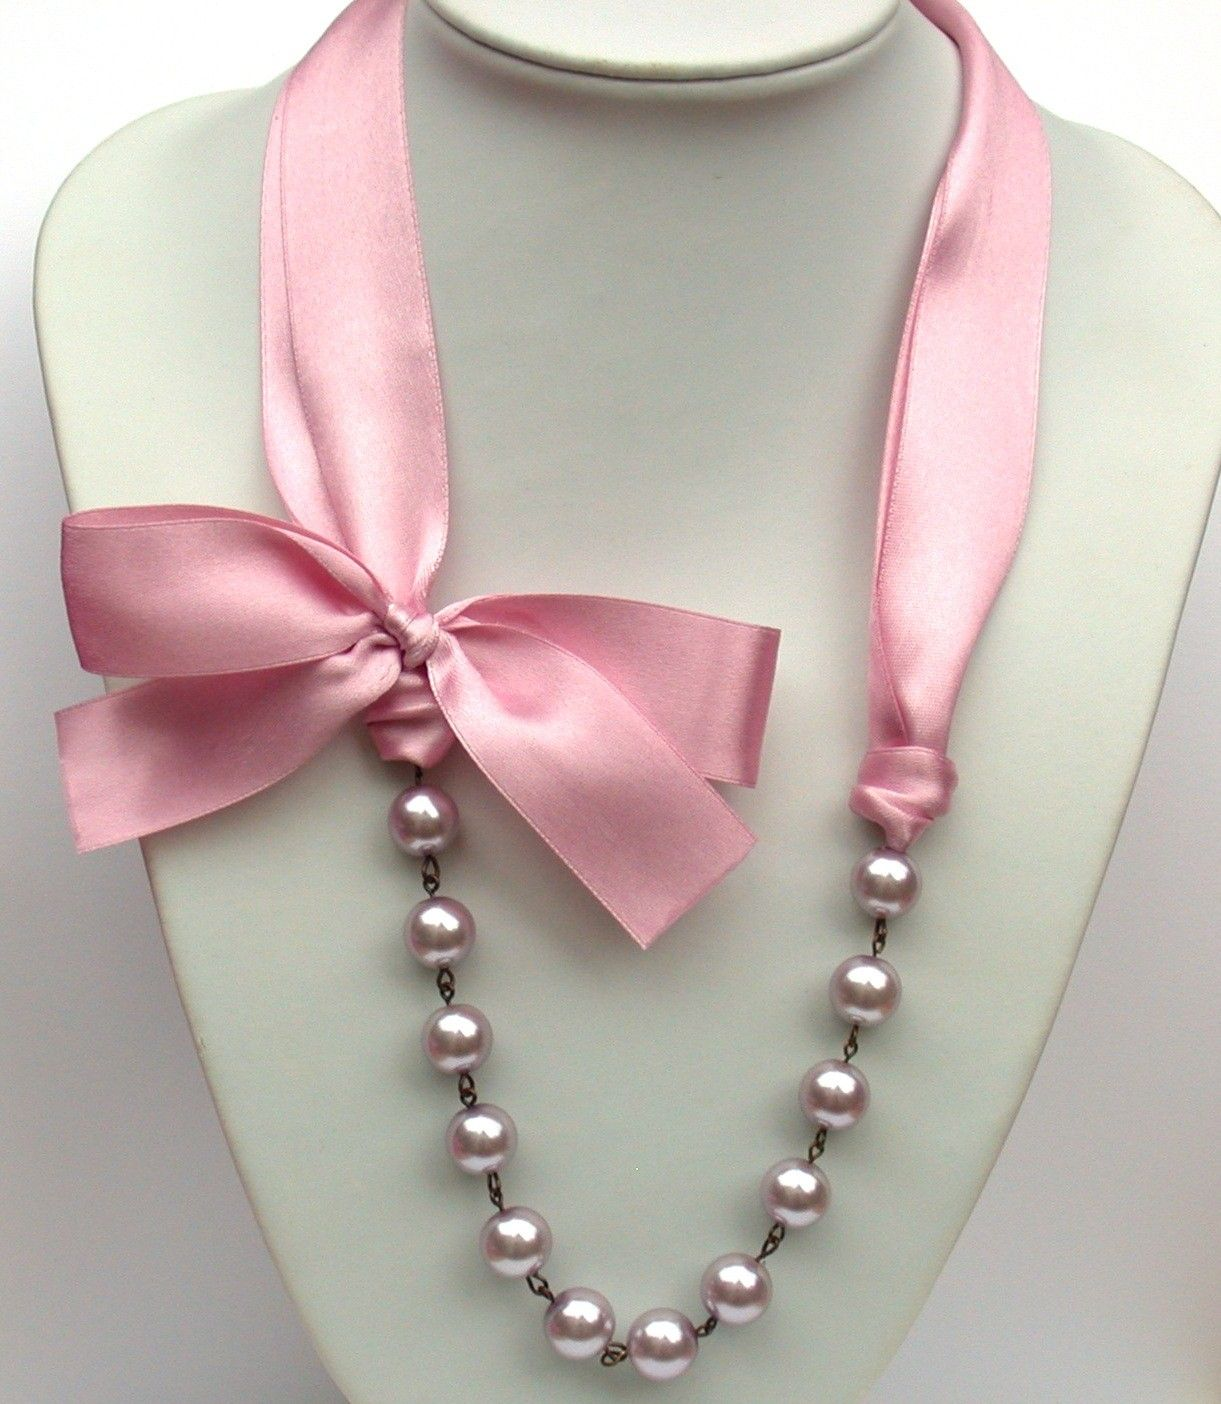 satin strand multiple inspired and pearl pin the black necklace wedding sex in bride city bridesmaids for ribbon formal perfect ribbons color